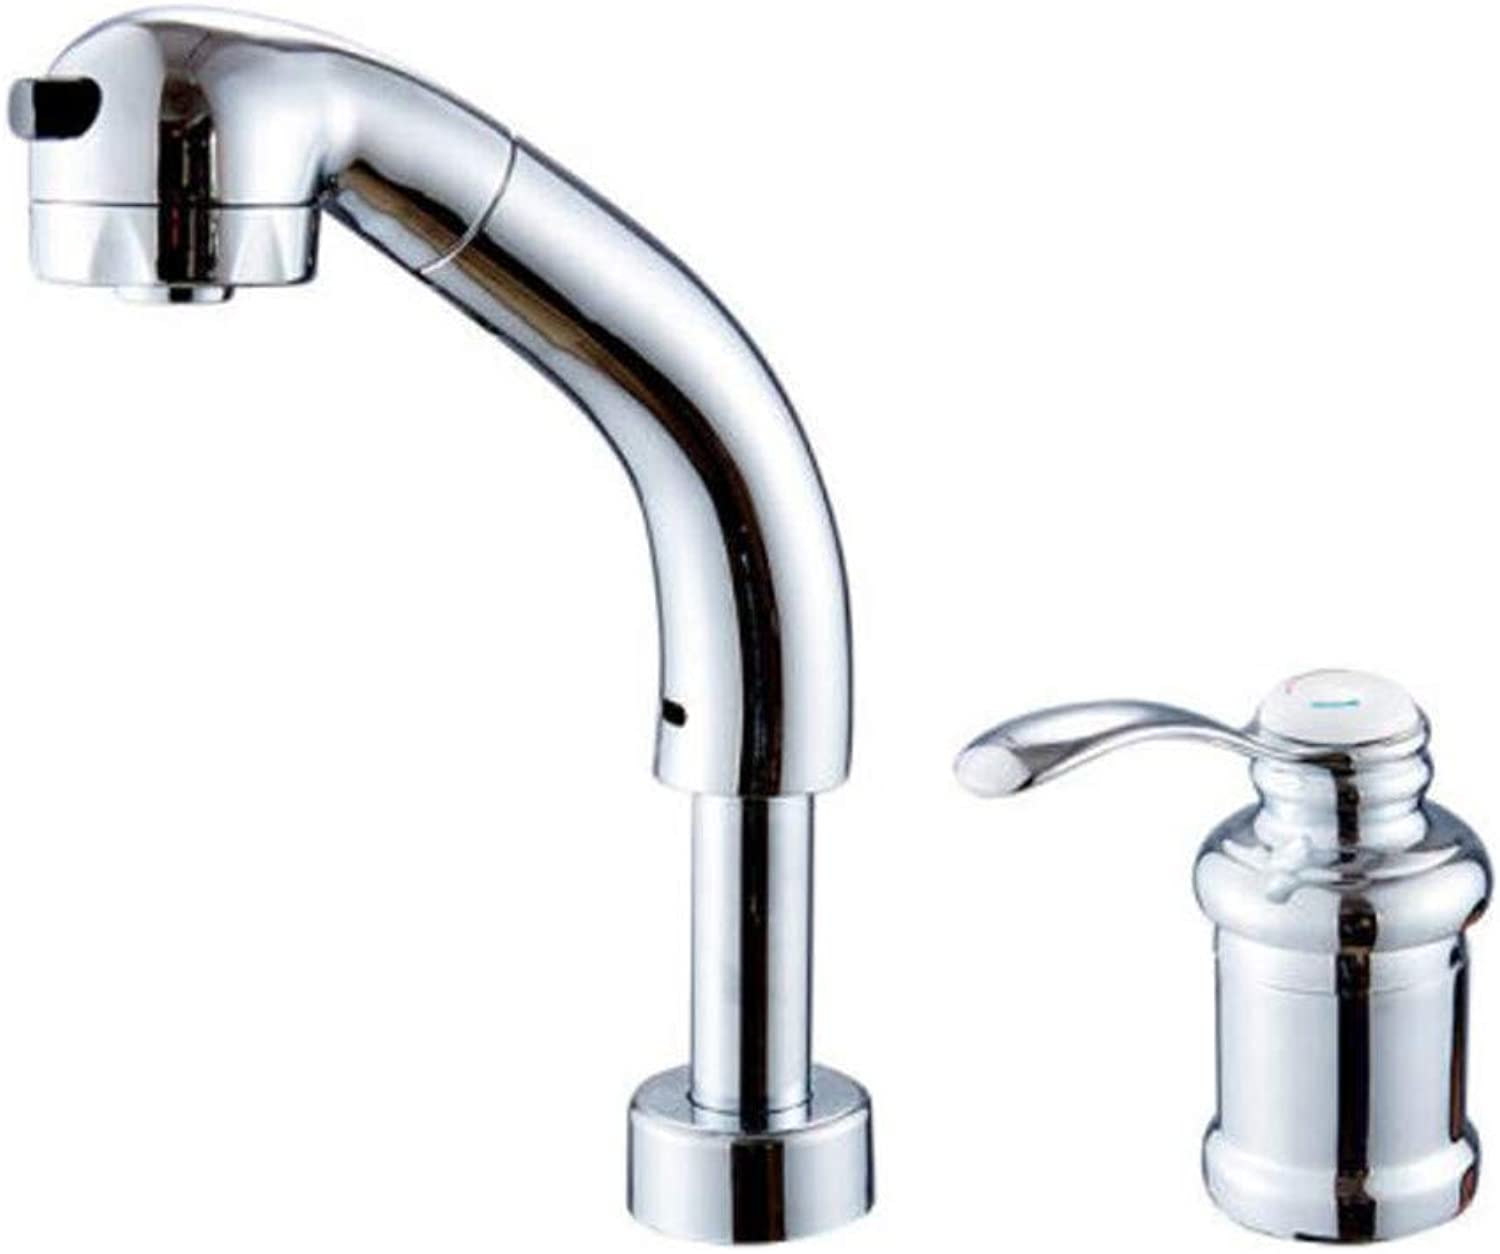 Mucert Split Double Hole Hot and Cold Faucet, Pull Basin Basin Faucet, Telescopic Basin Head Can Be Lifted.